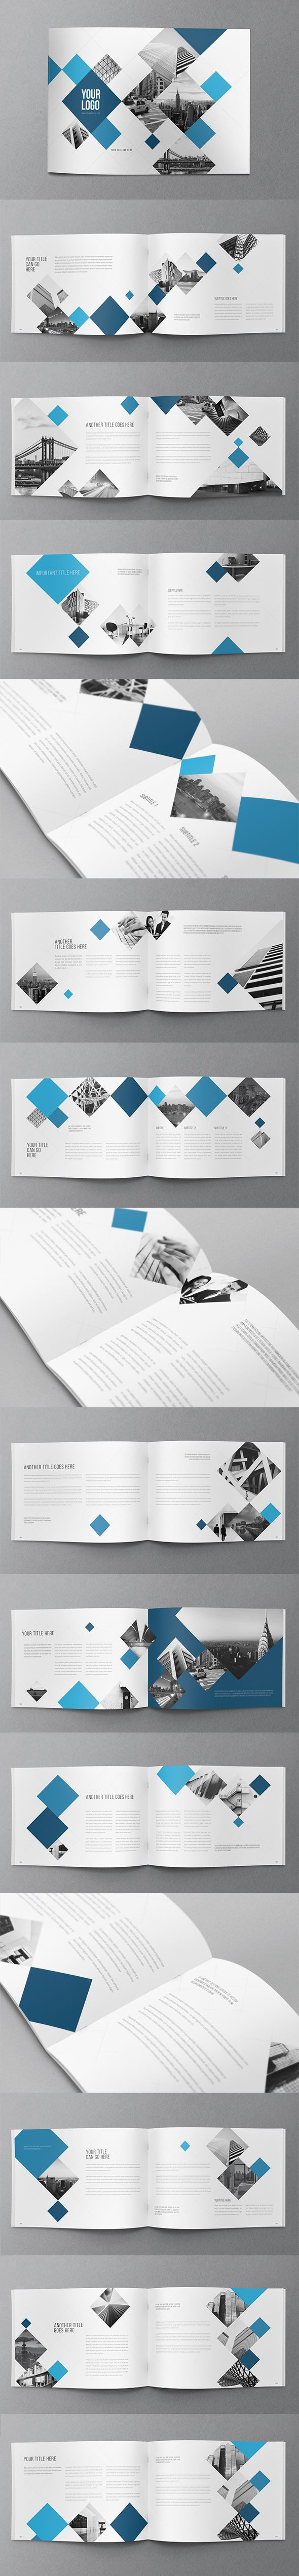 Modern Blue Squares Brochure. Download here: http://graphicriver.net/item/modern-blue-squares-brochure/11065766?ref=abradesign #brochure #design